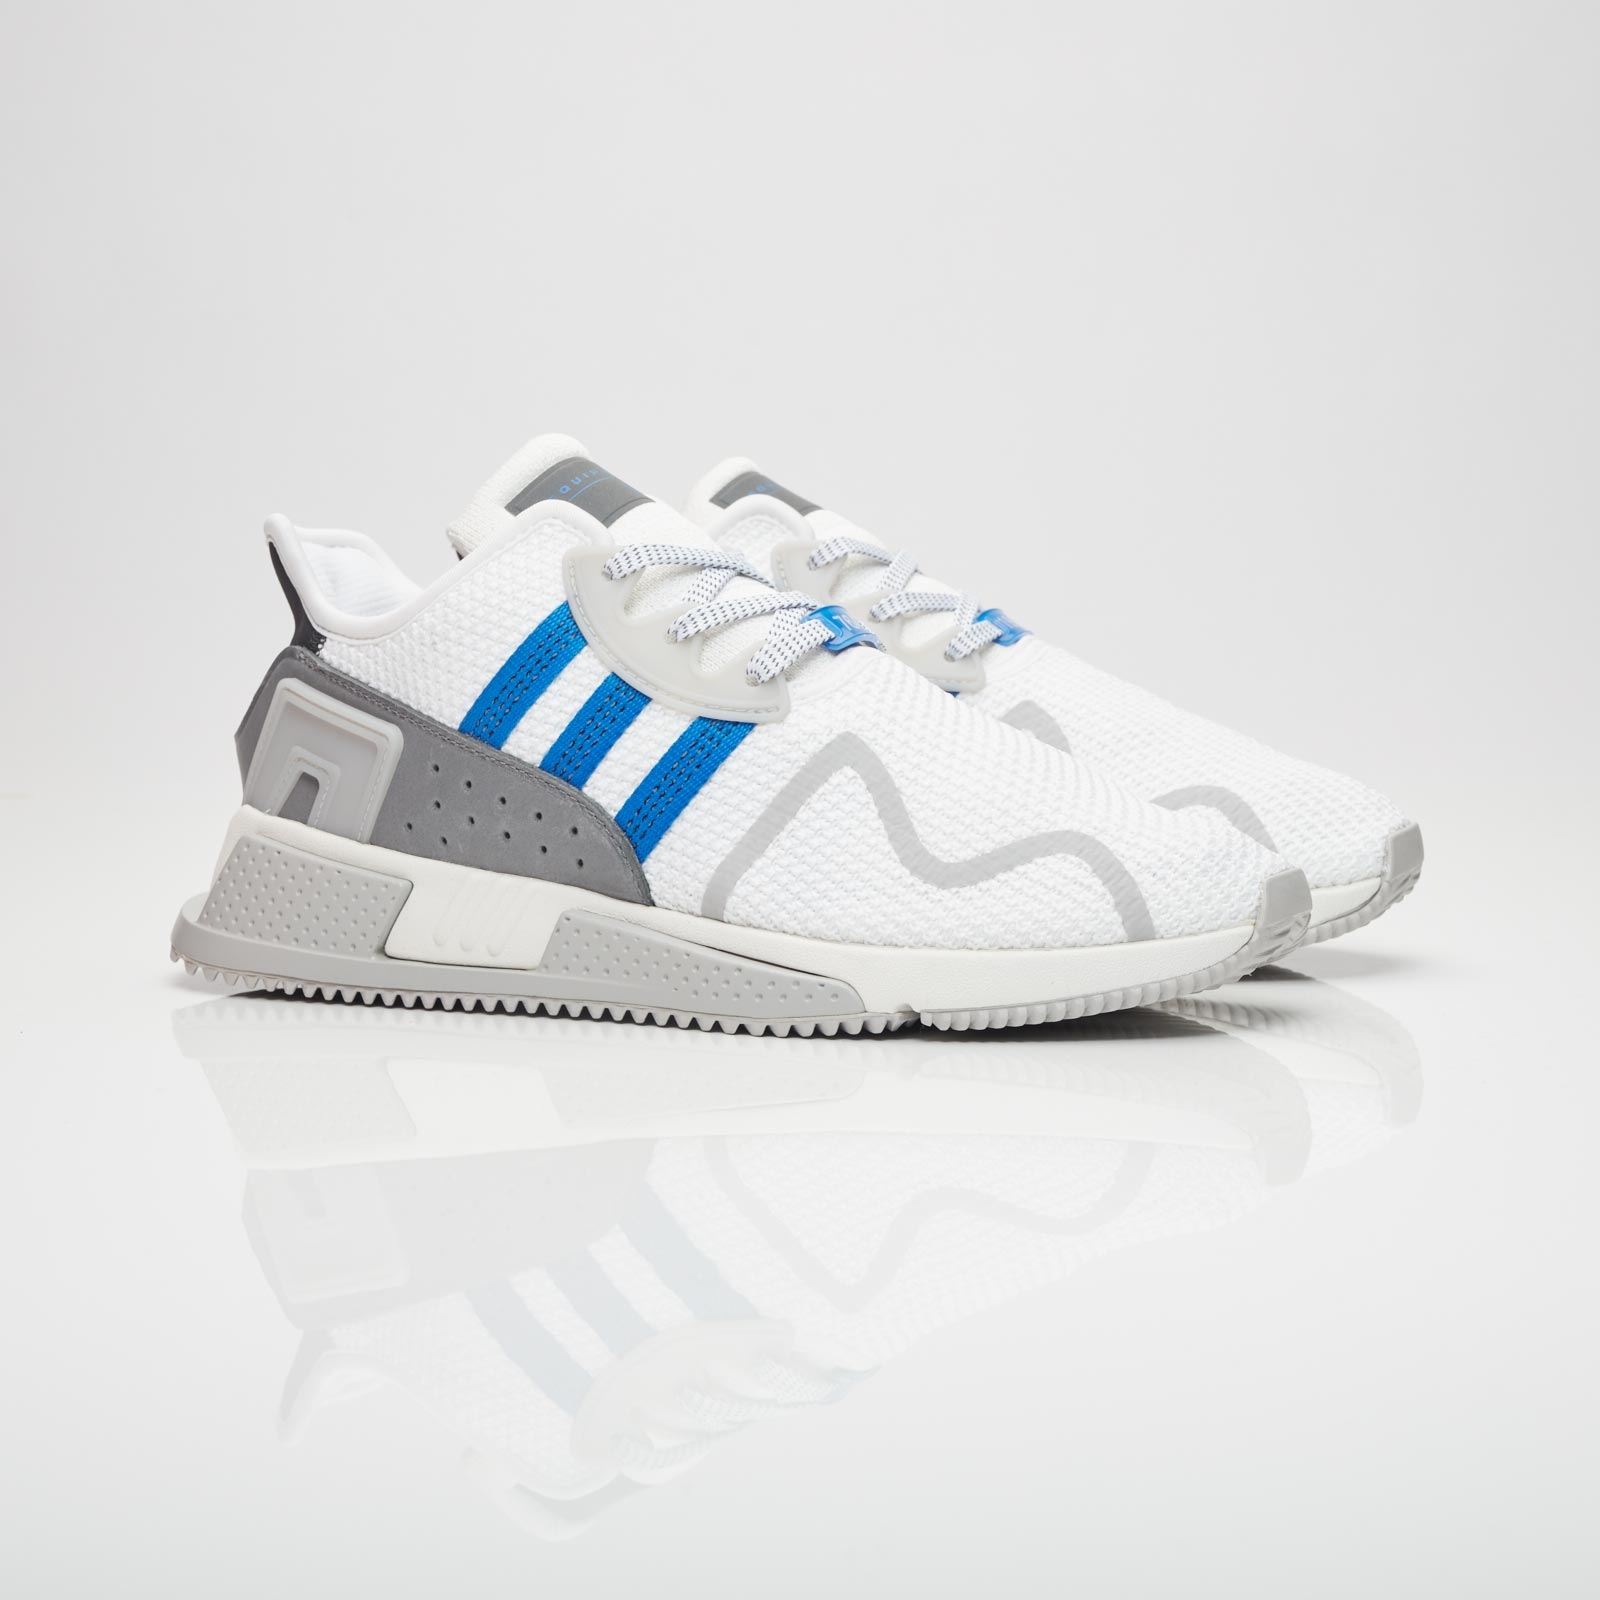 info for 0cb62 ab475 adidas EQT Cushion Adv - Cp9459 - Sneakersnstuff | sneakers ...